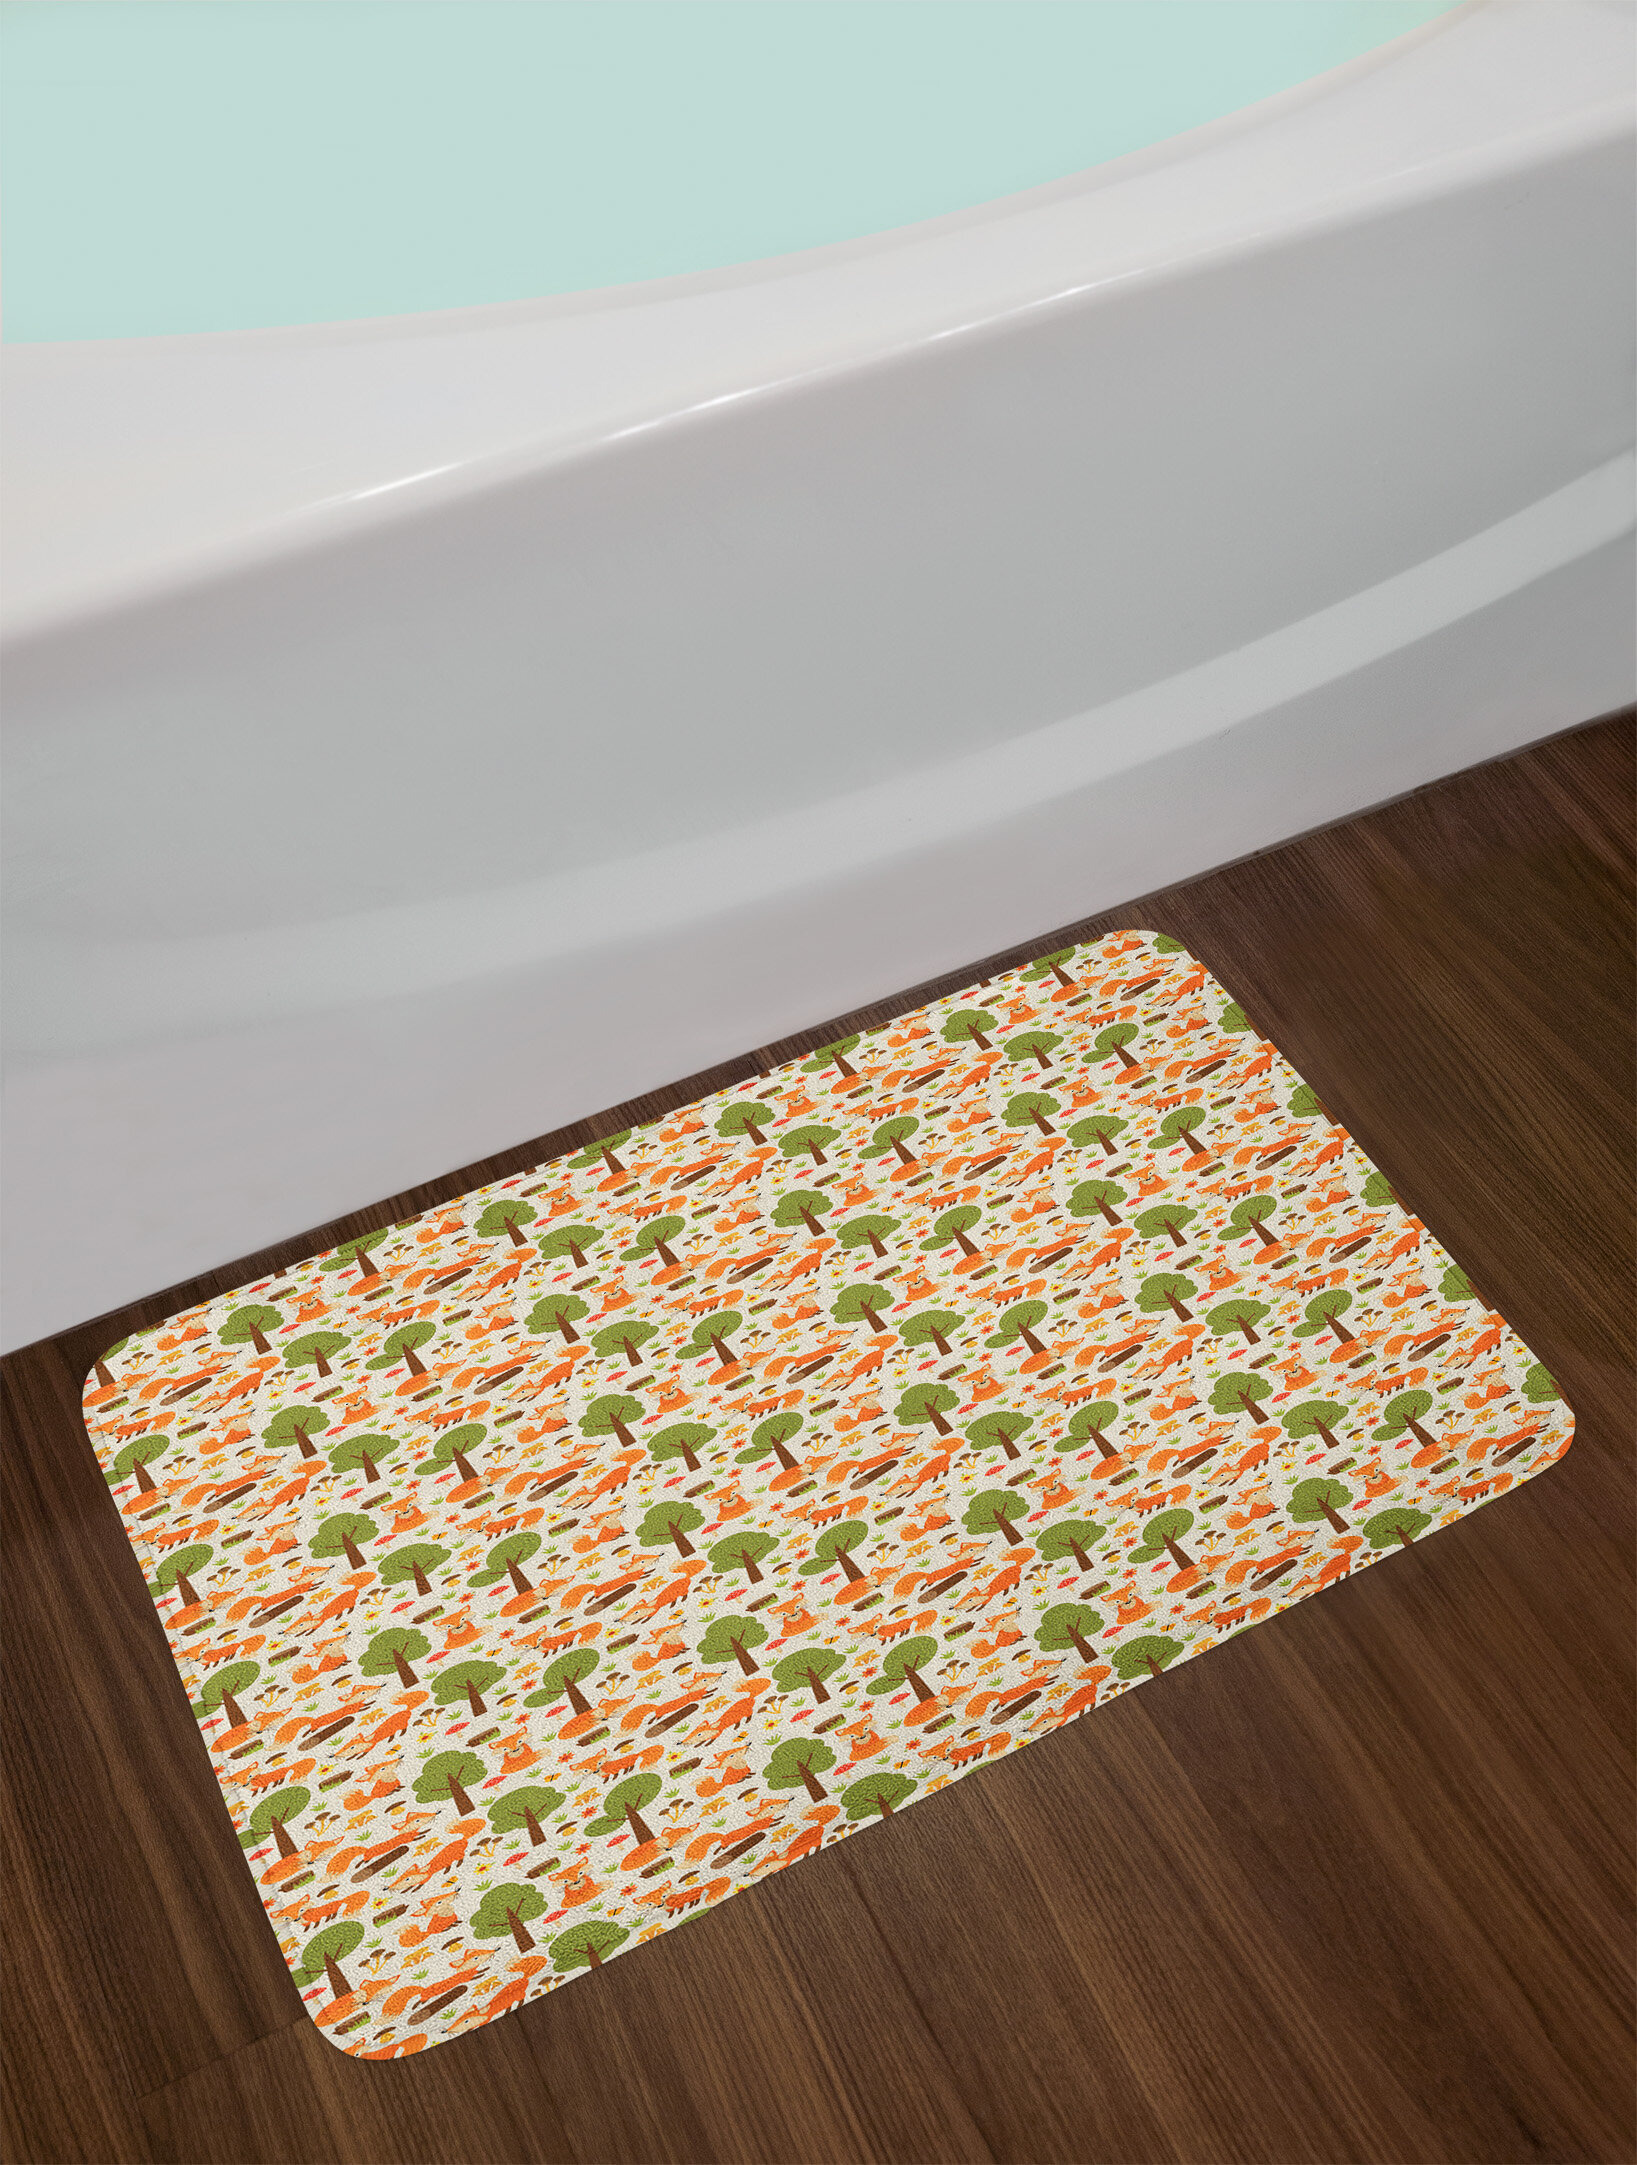 Wildlife Bathroom Decor Lovely Ambesonne Fox Bath Mat by Wildlife Illustration with Foxes Mushrooms Flowers and butterflies In the Spring forest Plush Bathroom Decor Mat with Non